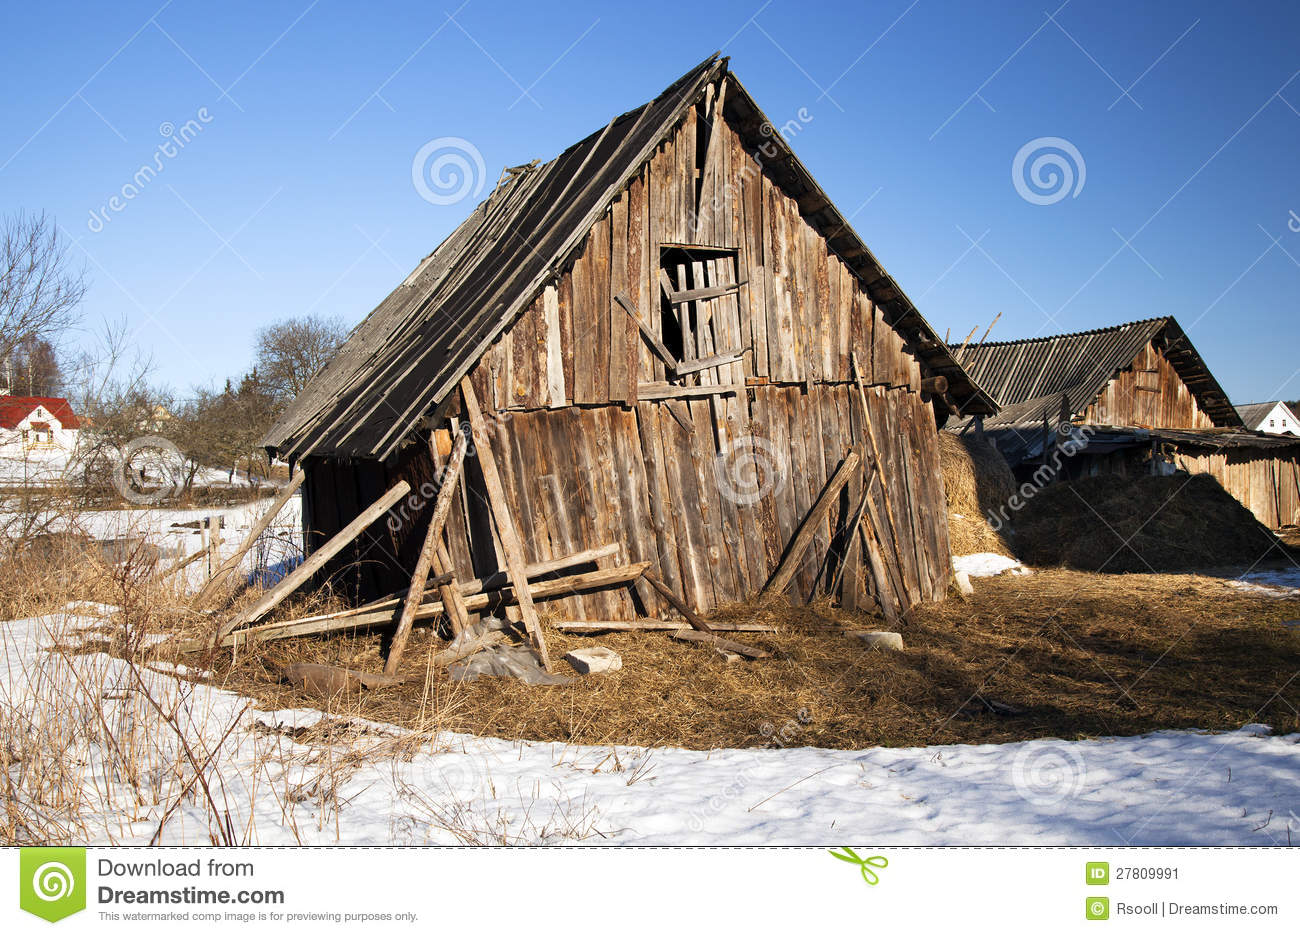 Fall Barn Wallpaper The Broken Shed Stock Image Image Of Hopelessness